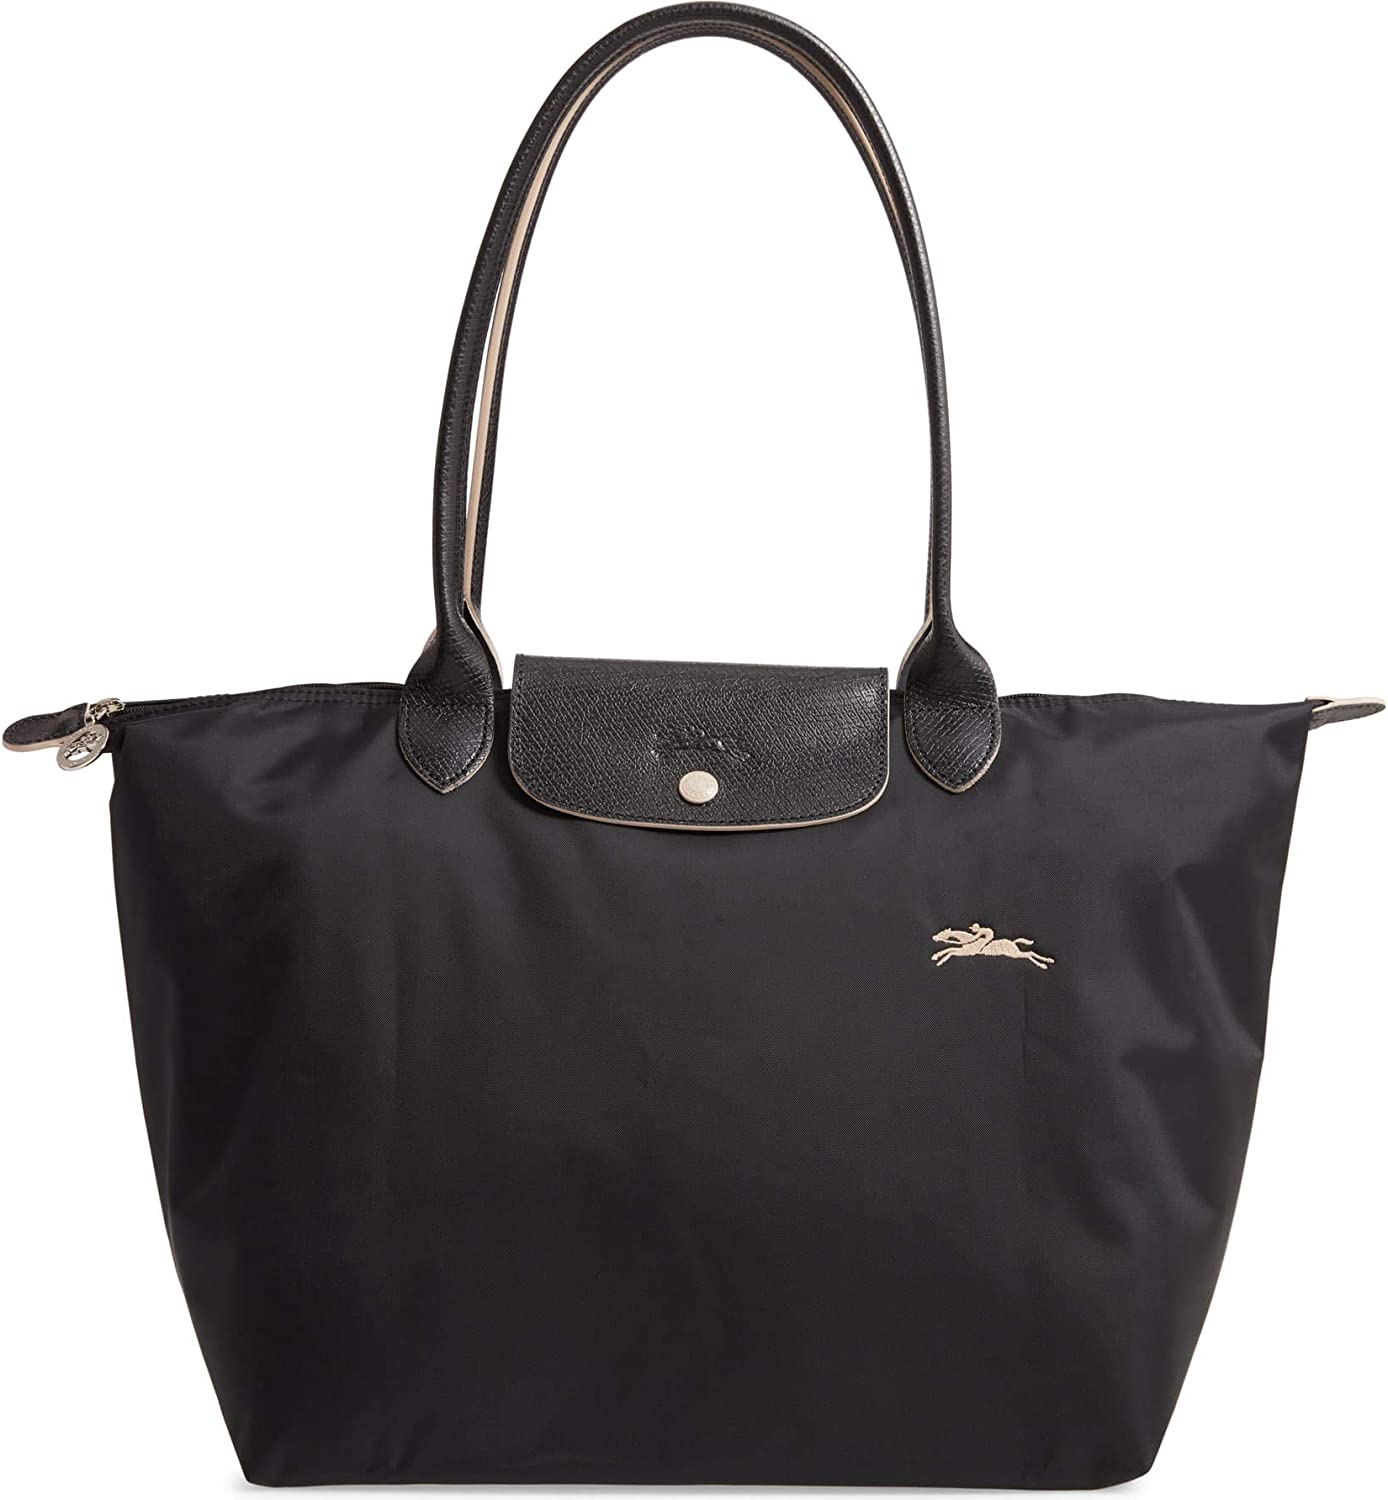 Longchamp Large Le Pliage Club Nylon Tote Shoulder Bag, Black